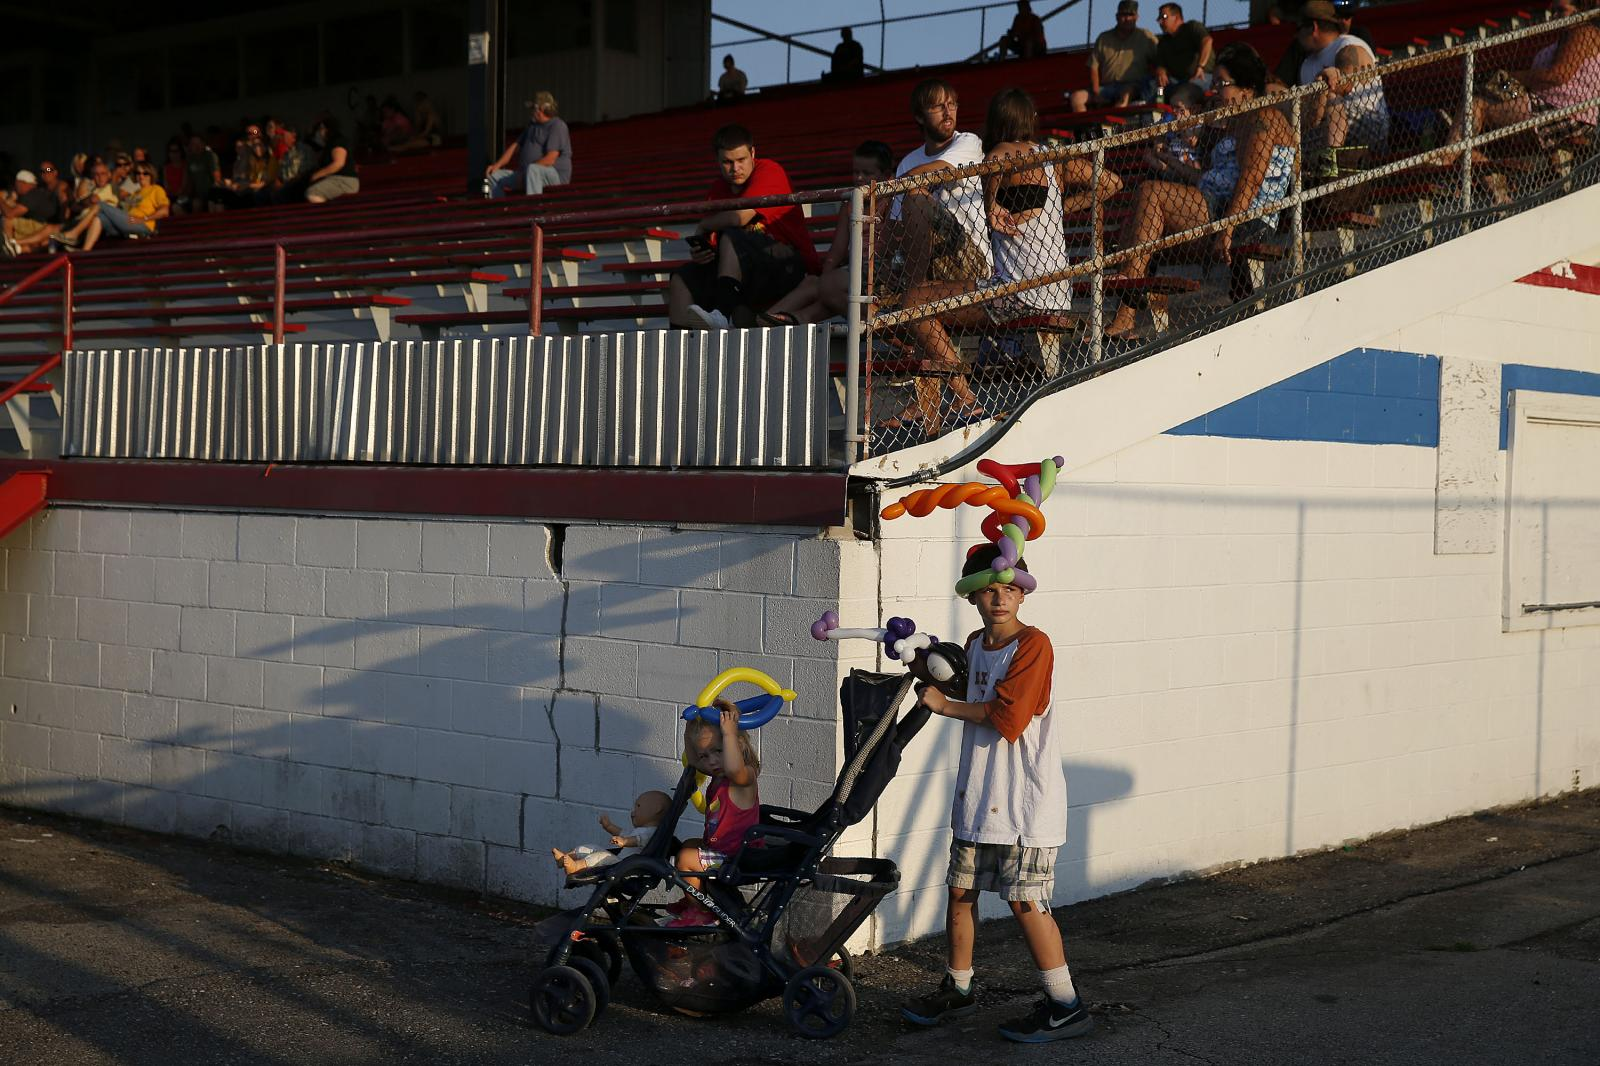 11-year-old D.J. McKinney of Cedar Rapids pushes his one-year-old sister Sofia McKinney in a stroller during race night at Hawkeye Downs in Cedar Rapids on Friday, August 14, 2015. (KC McGinnis / The Gazette)